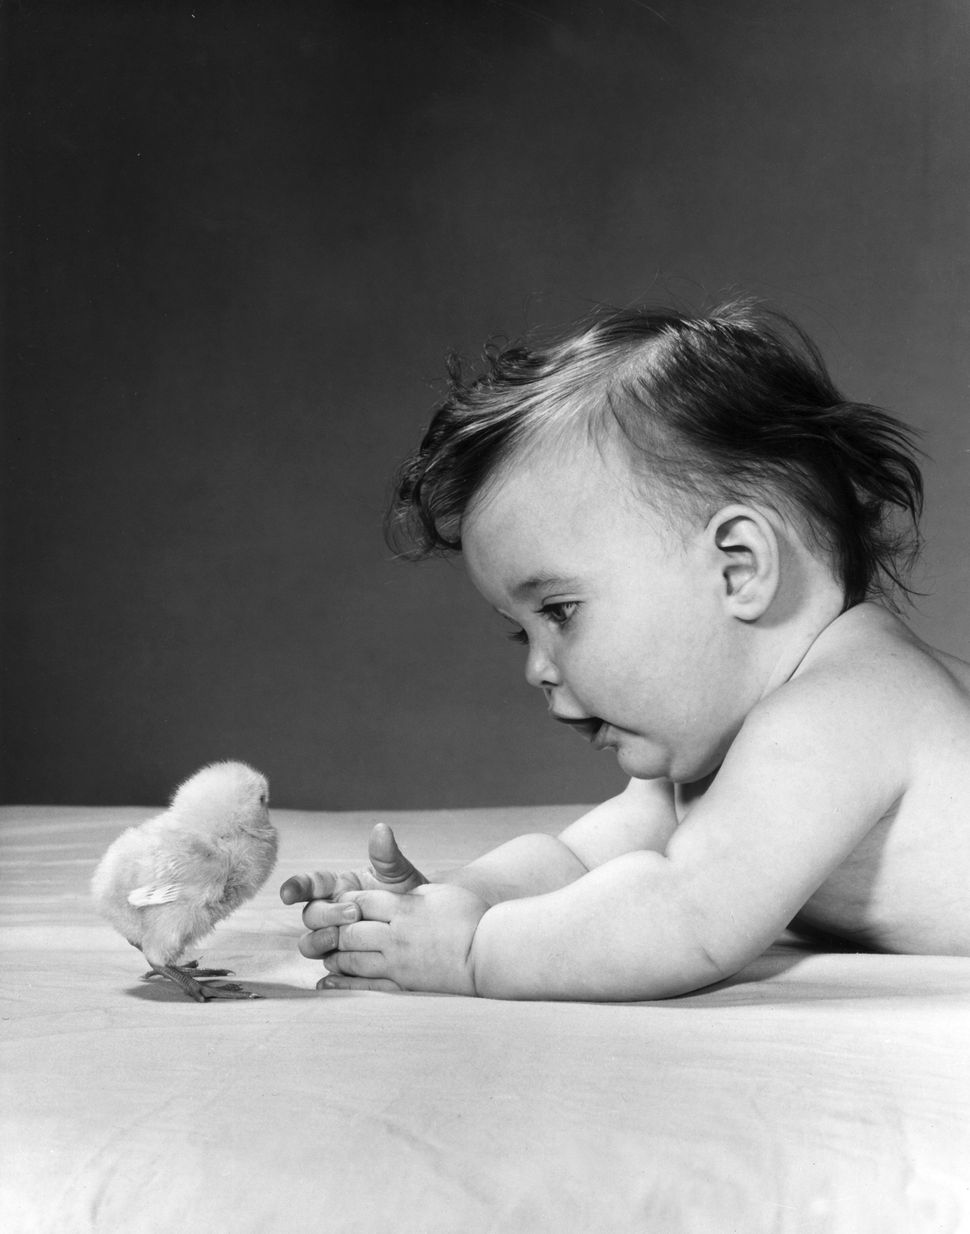 Baby and baby chick, in the 1950s.